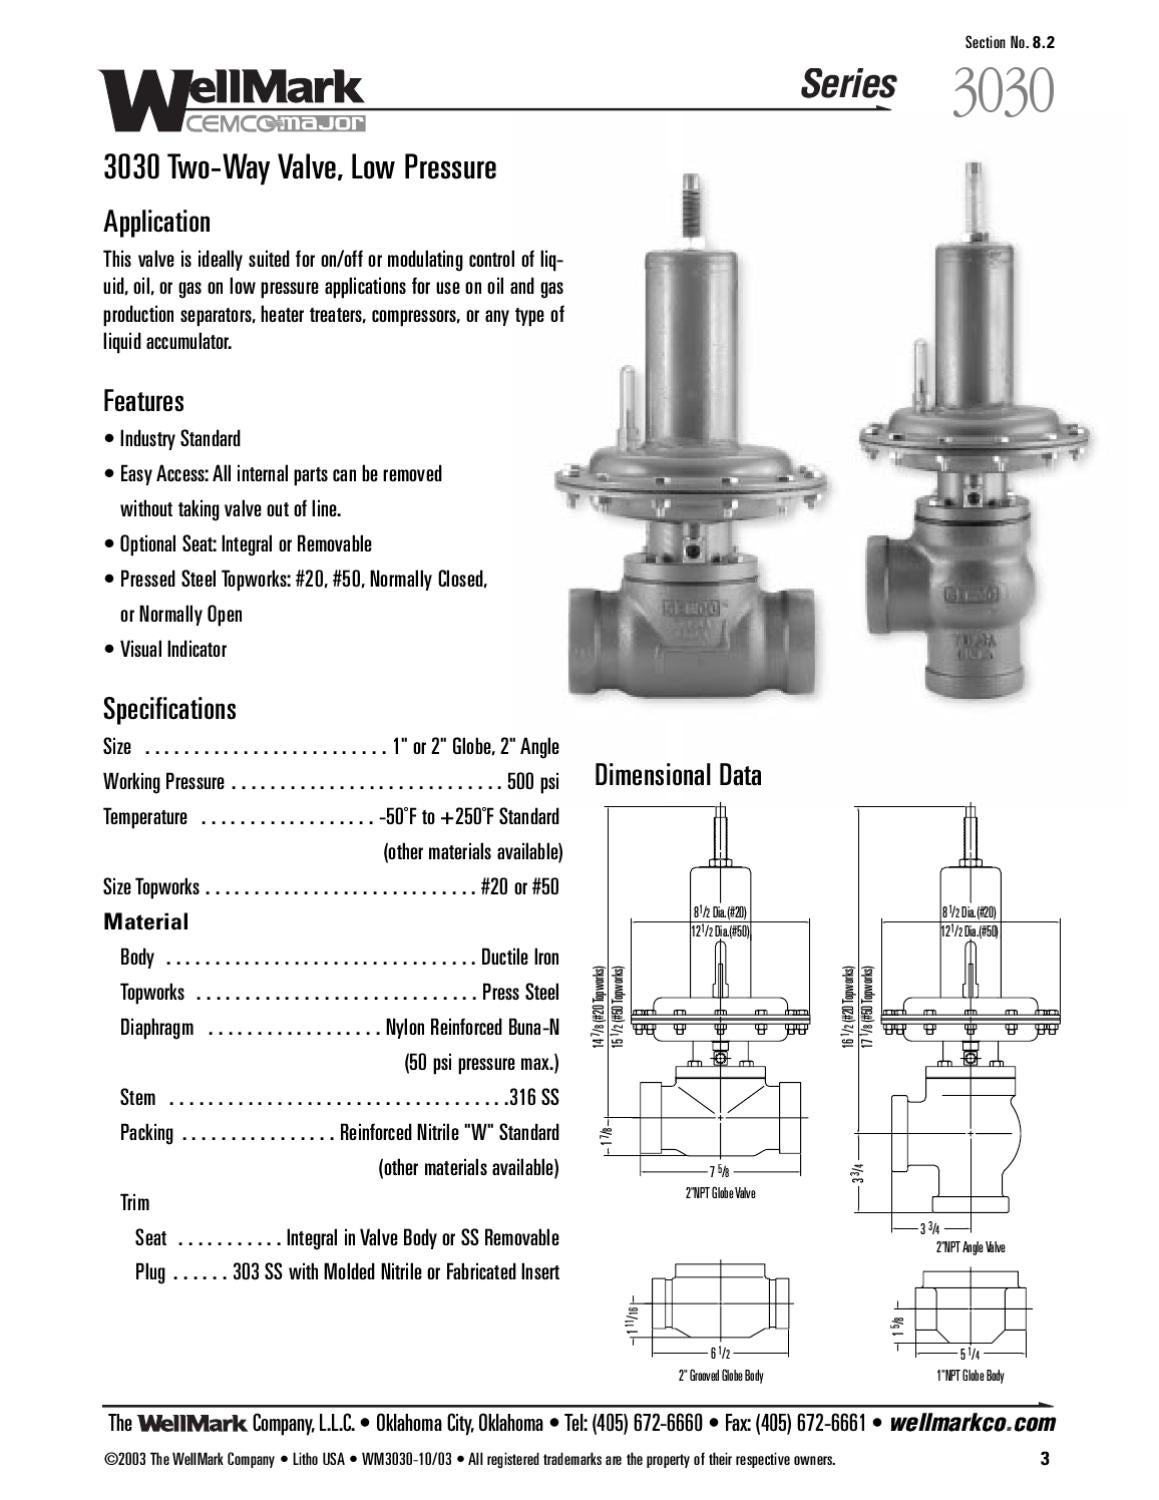 3030 Valve Specification, Order Code & Parts Manual by RMC